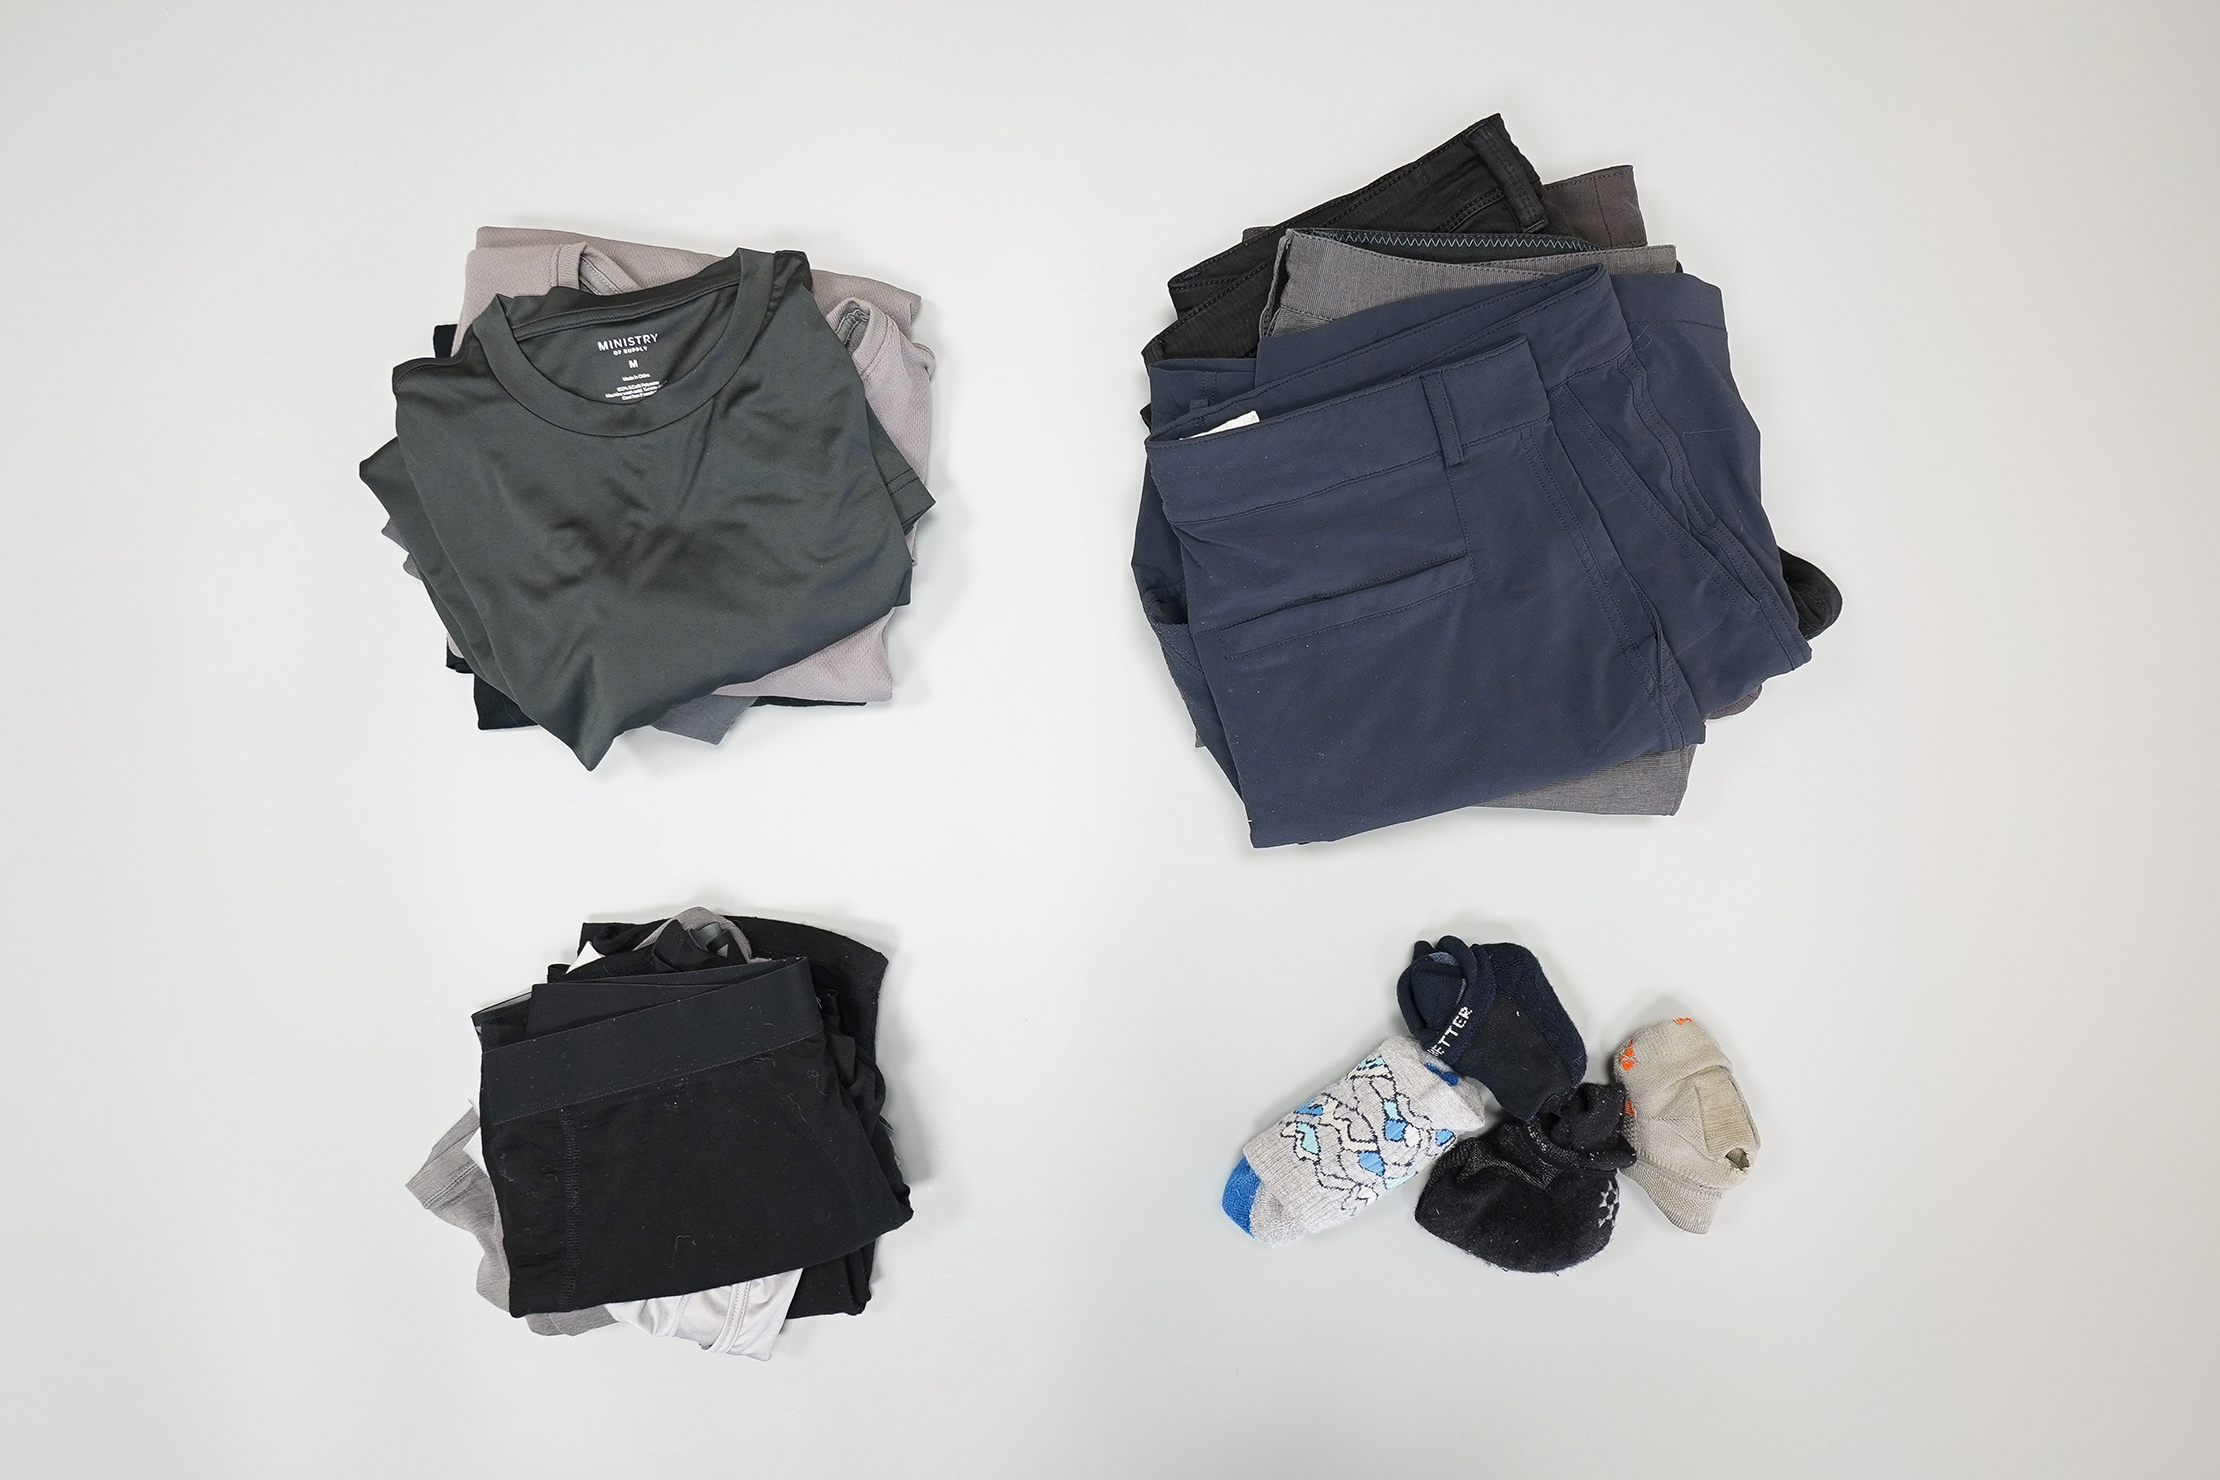 How To Pack a Carry-on Gear Organized By Type